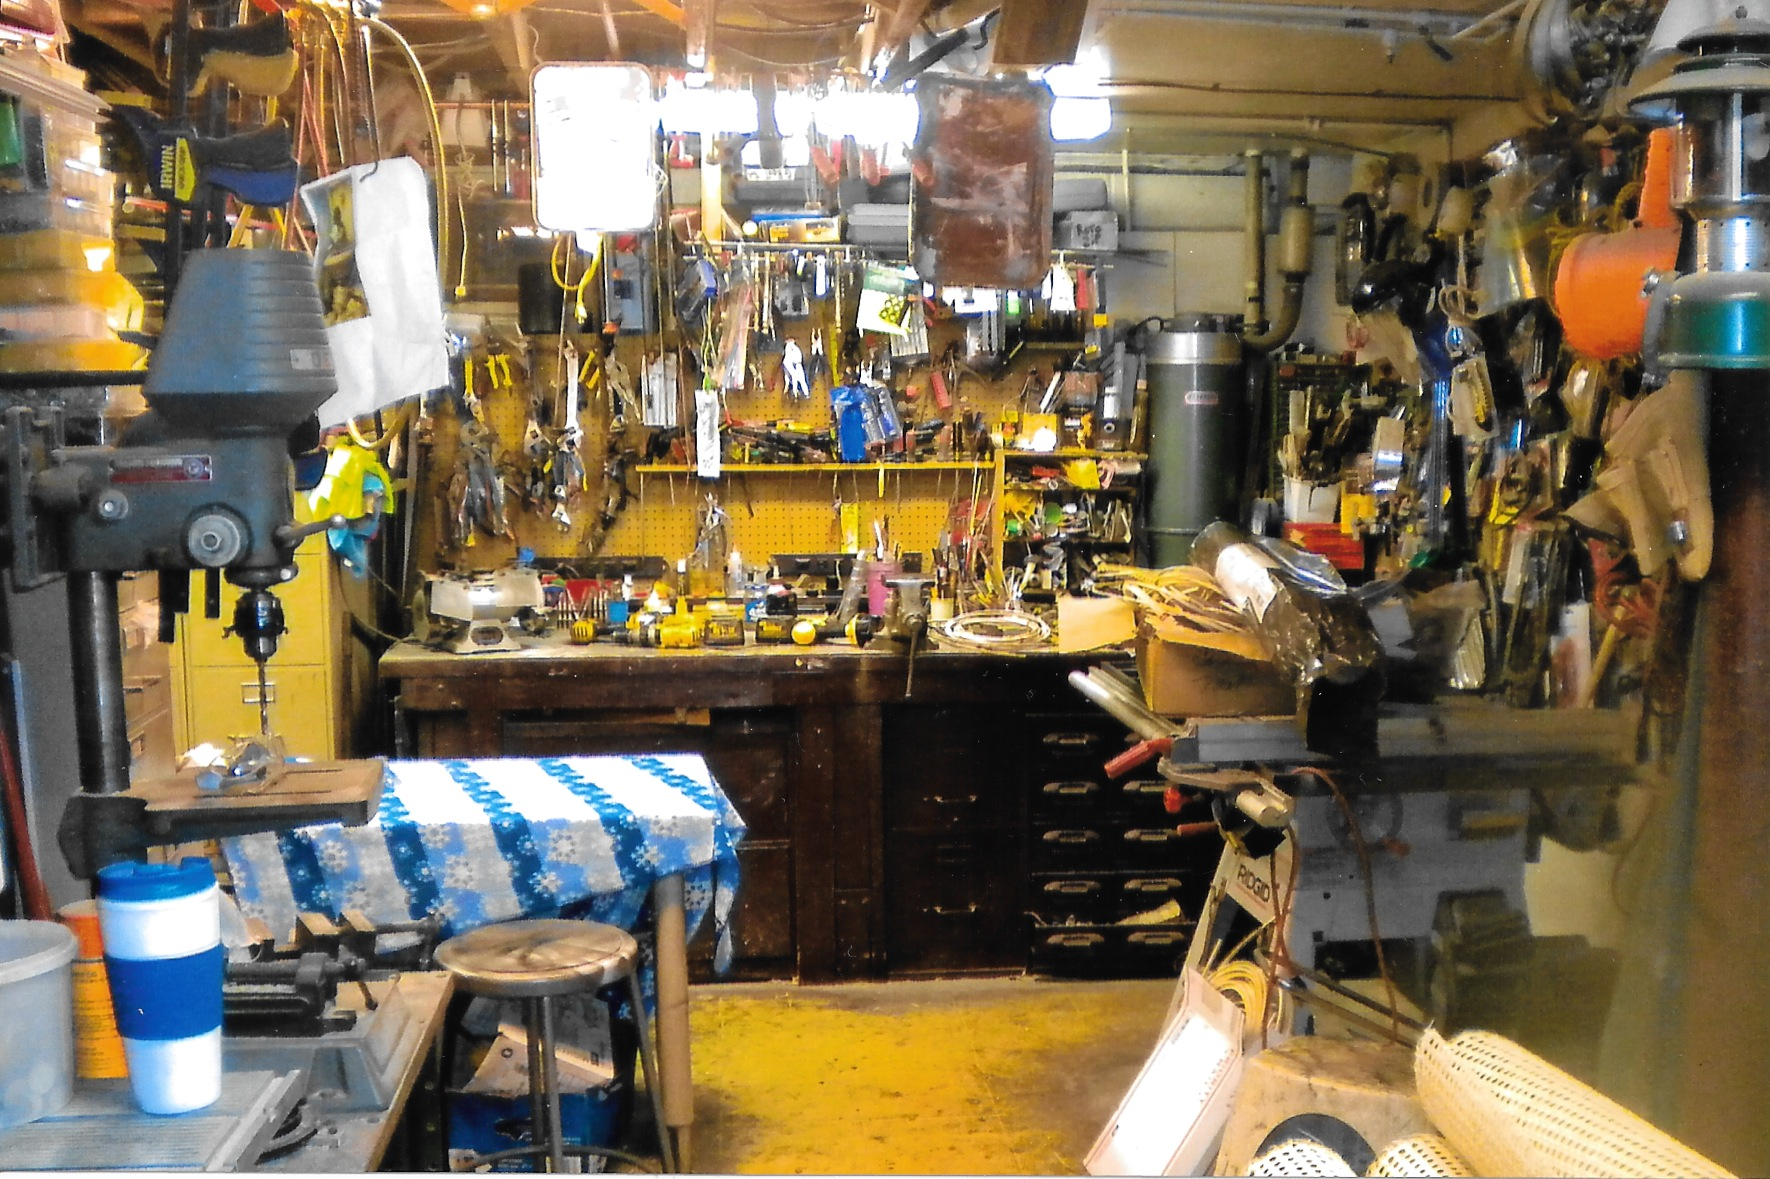 My workshop in Franklin Lakes, New Jersey. Over the last sixty years, I accumulated every tool of the trade (there are many that are not featured here). It may smell of sawdust and lacquer, but that's what gives it character, right?